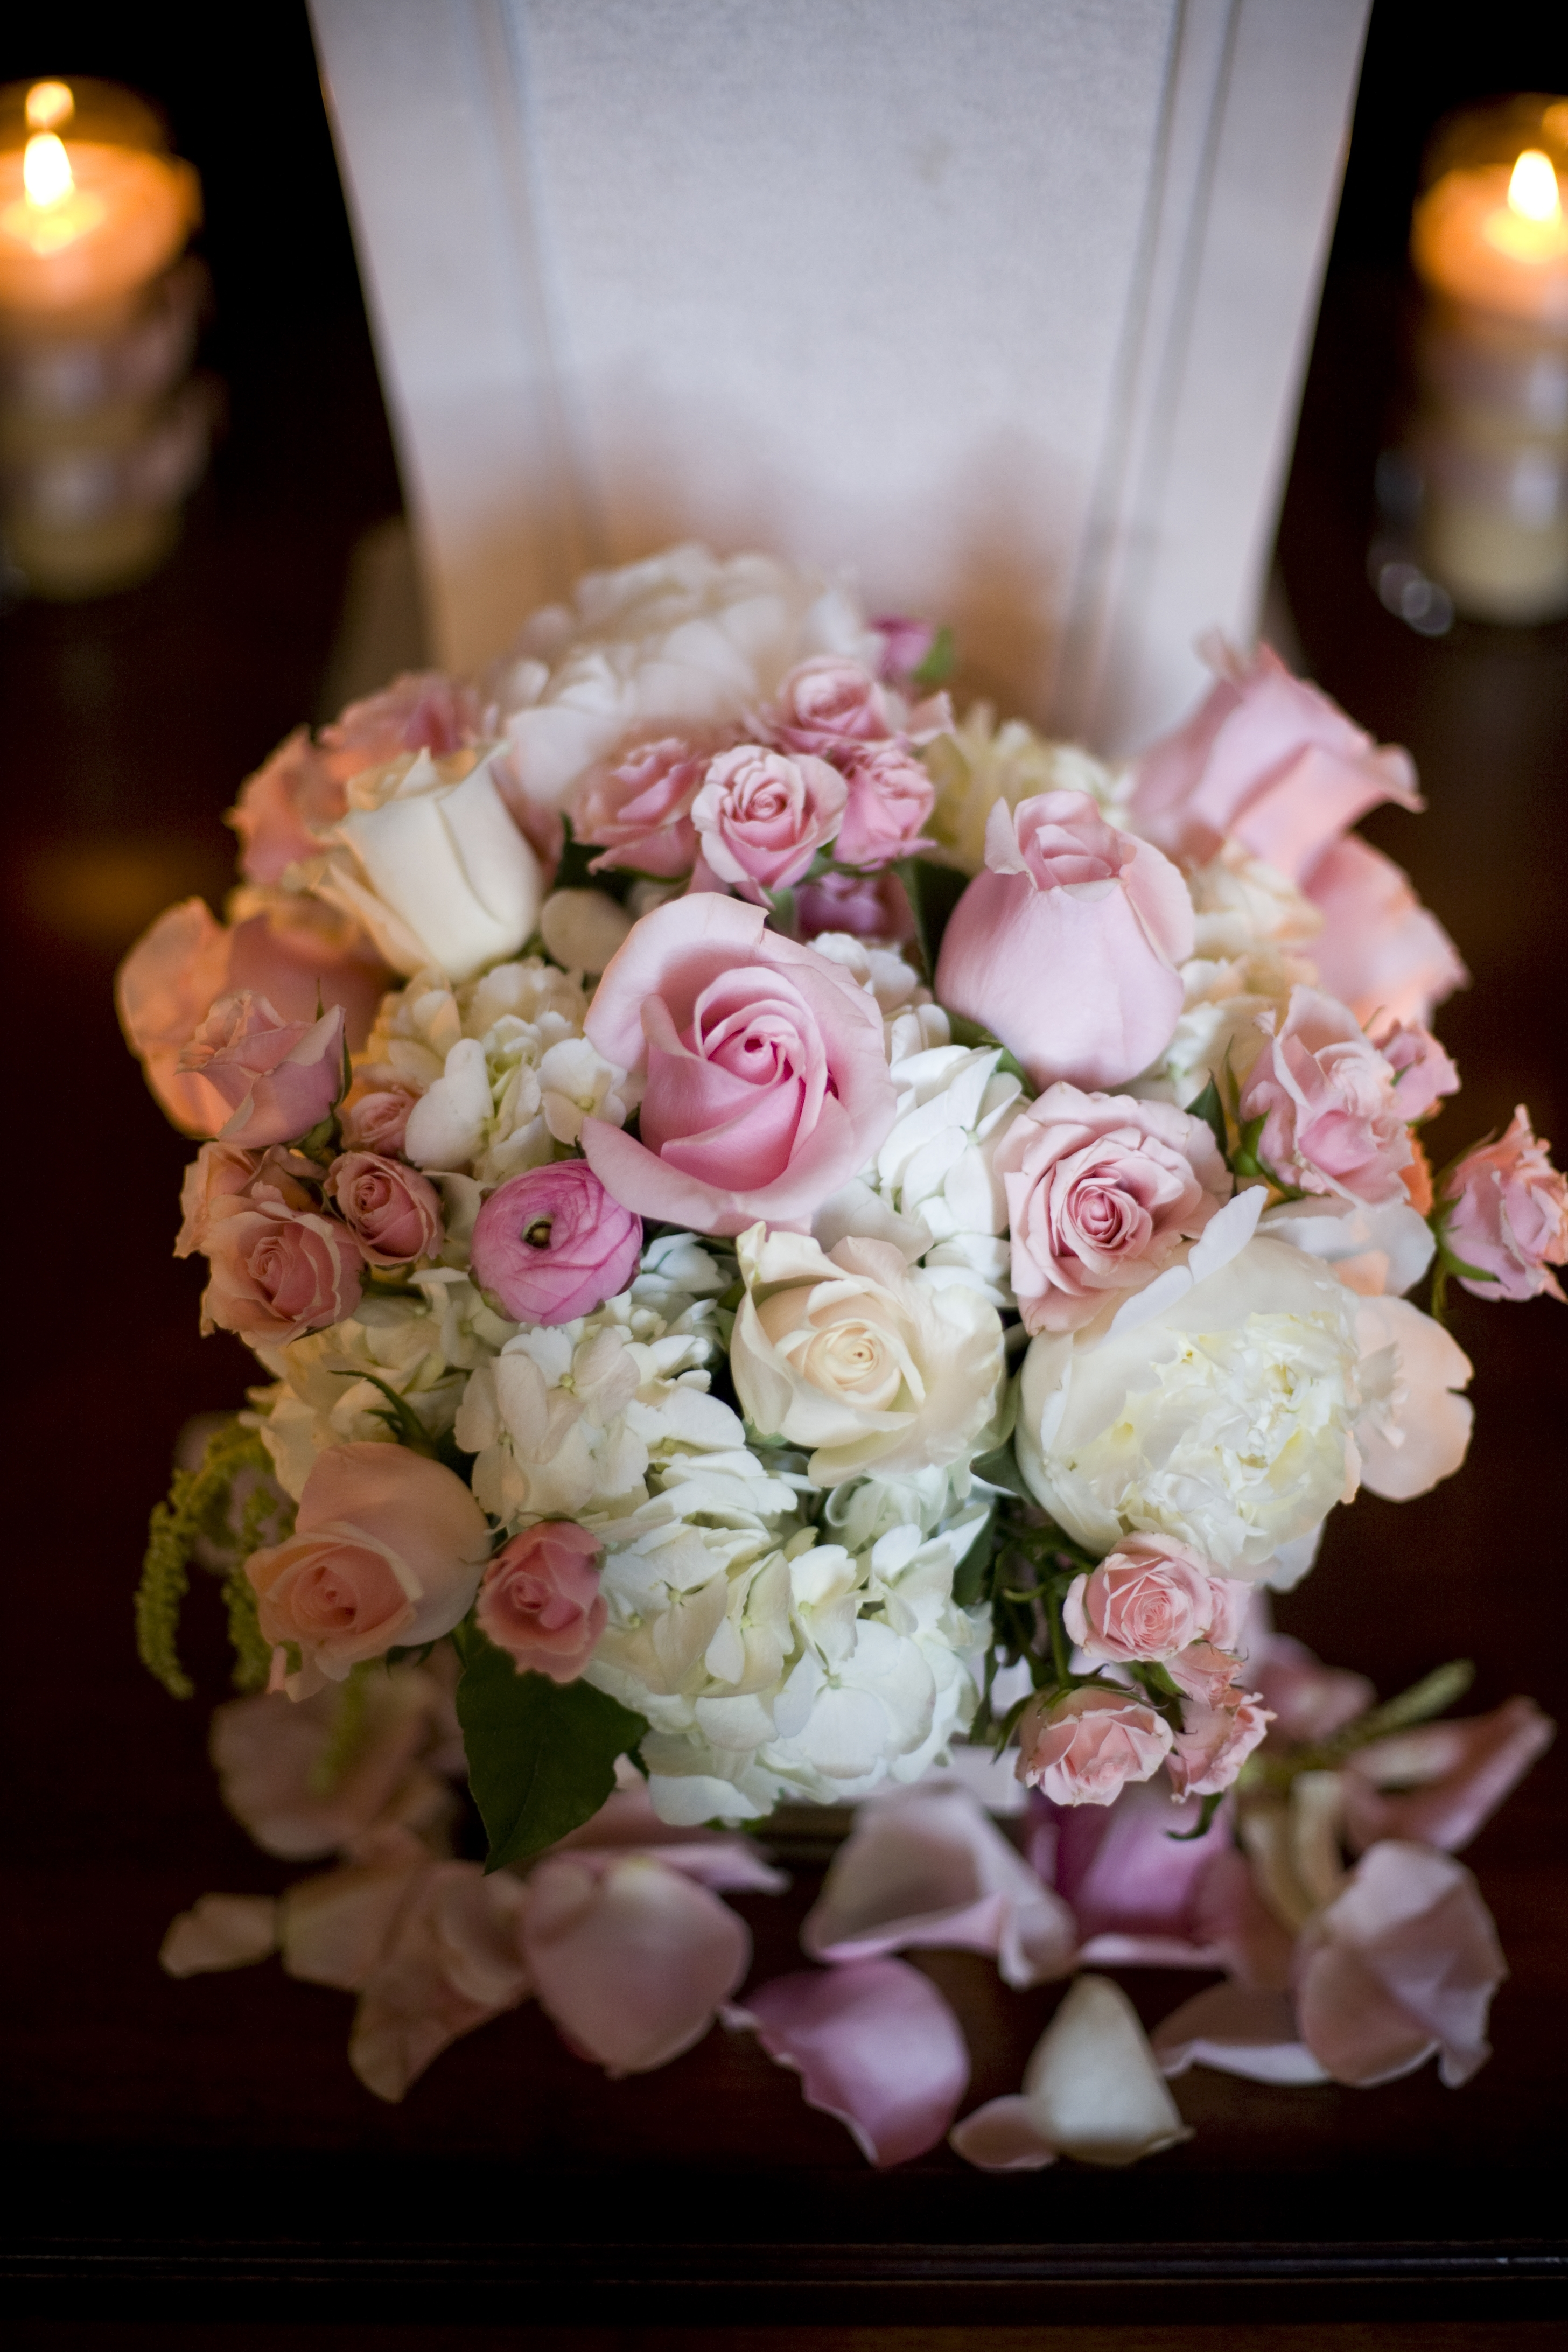 Reception, Flowers & Decor, Decor, white, pink, Flowers, V3 weddings events